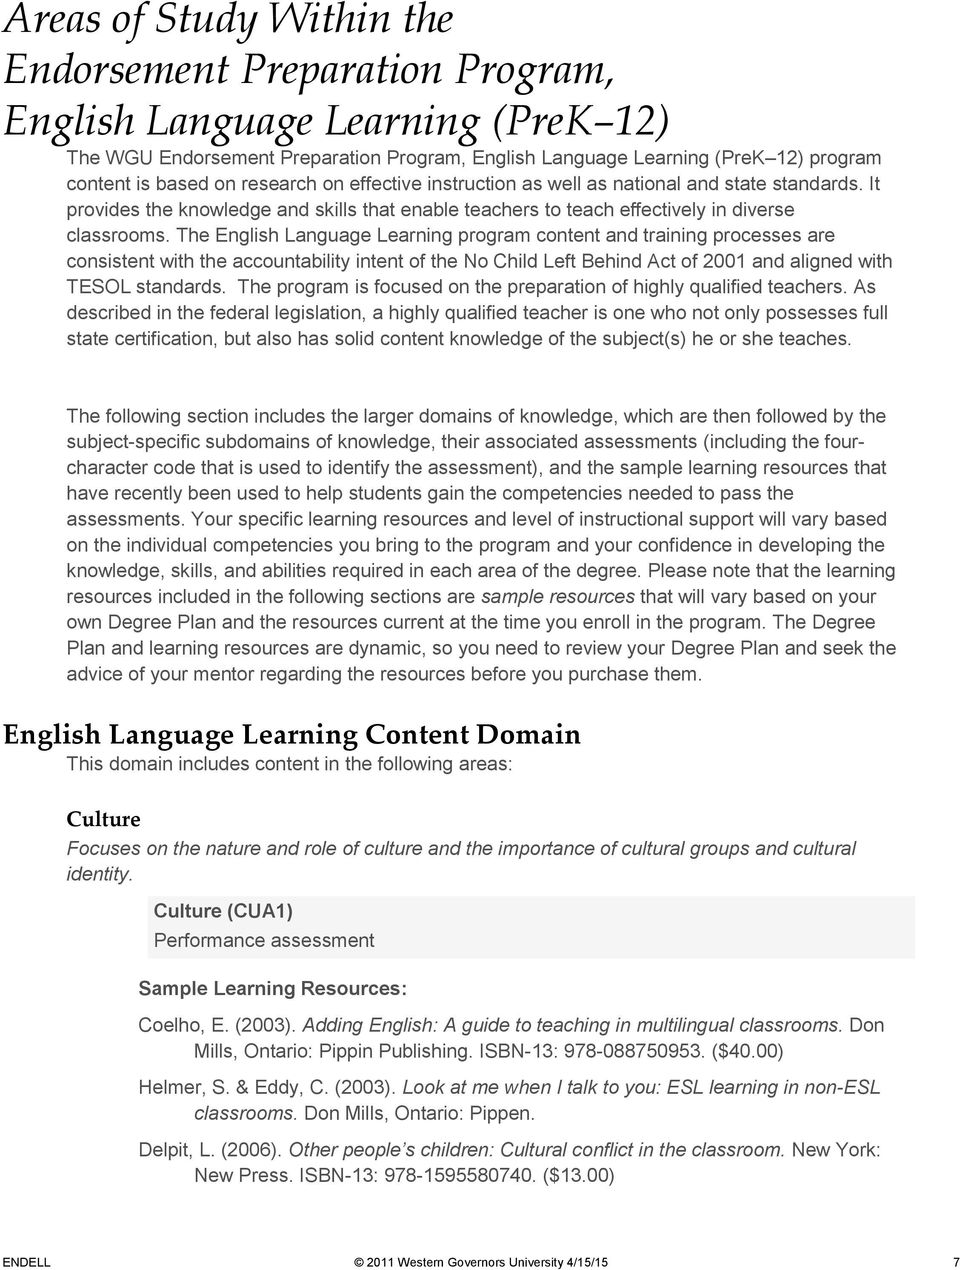 The English Language Learning program content and training processes are consistent with the accountability intent of the No Child Left Behind Act of 2001 and aligned with TESOL standards.